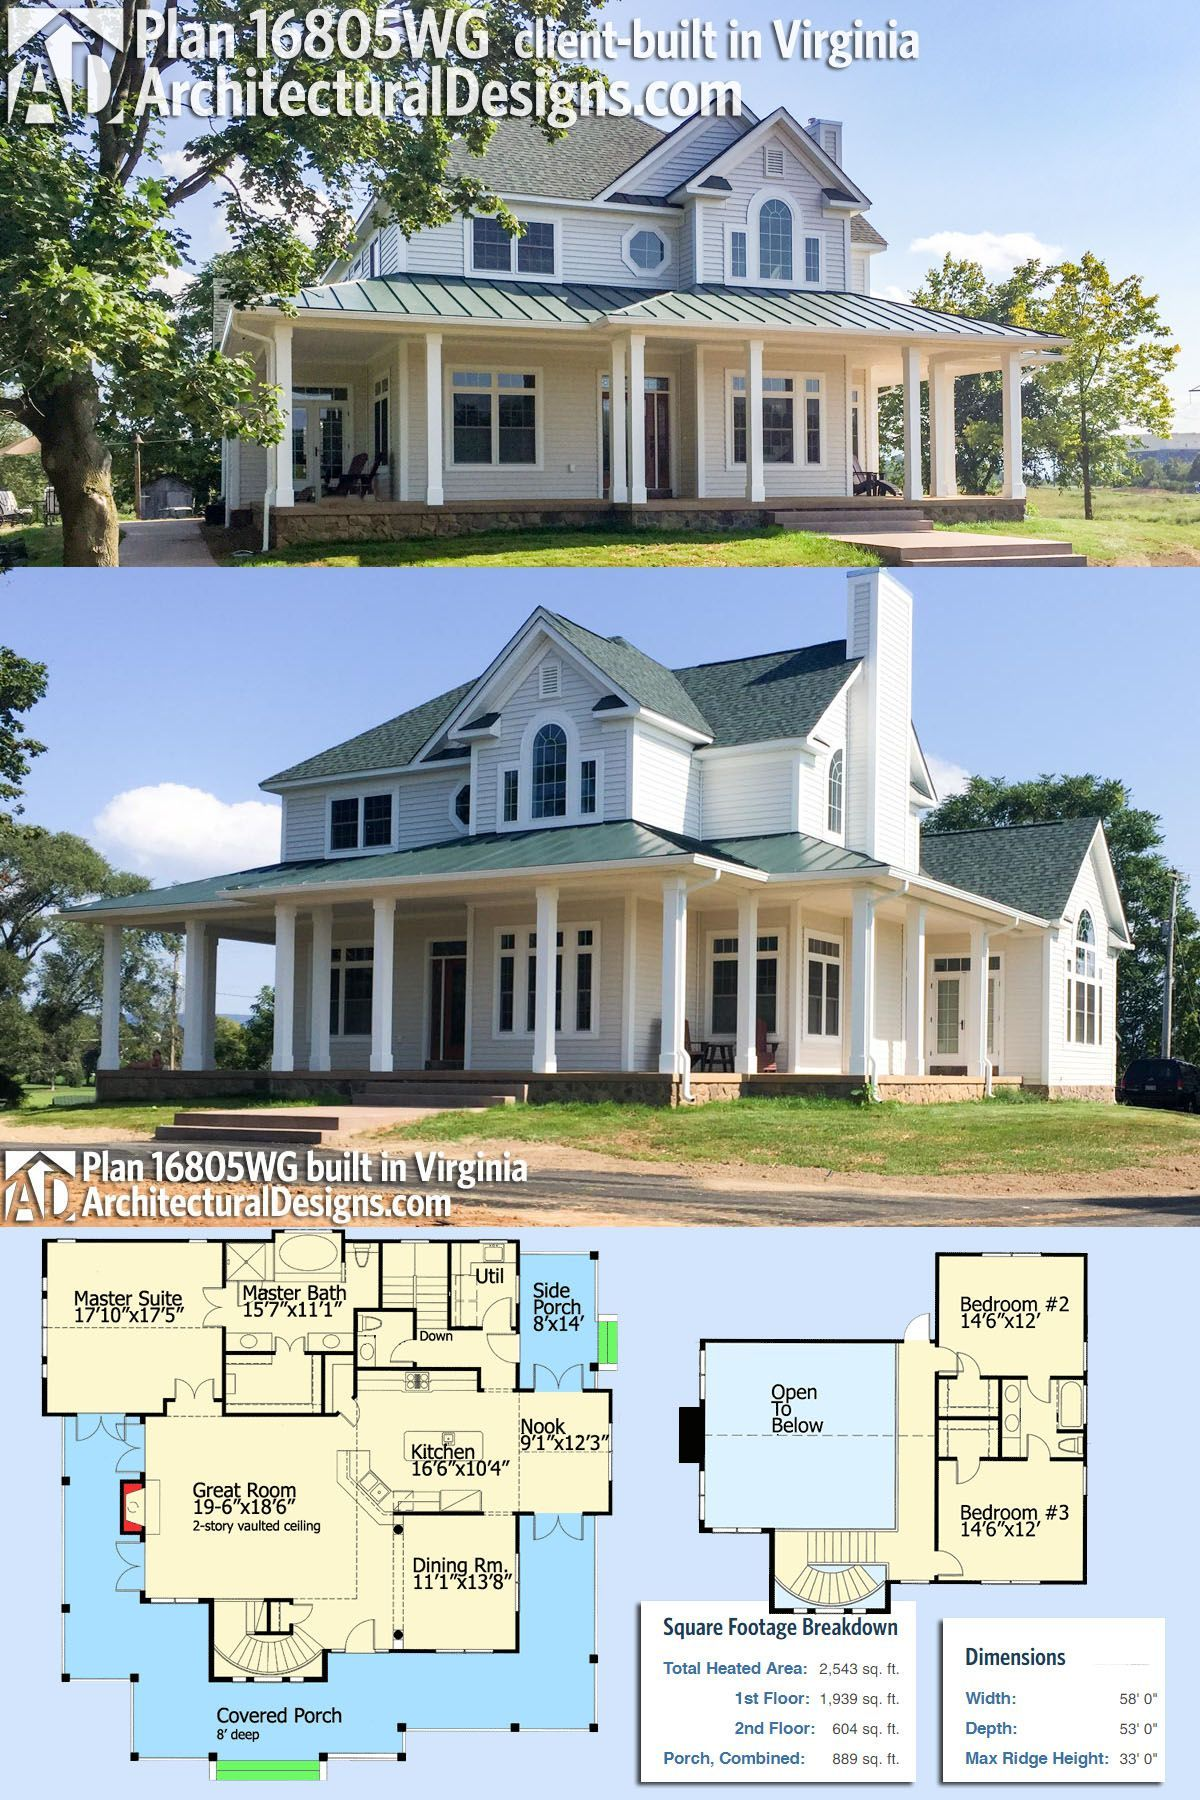 Our Client Built Architectural Designs House Plan 16805wg True To Spec In Reverse Orient Porch House Plans Country House Plans Architectural Design House Plans